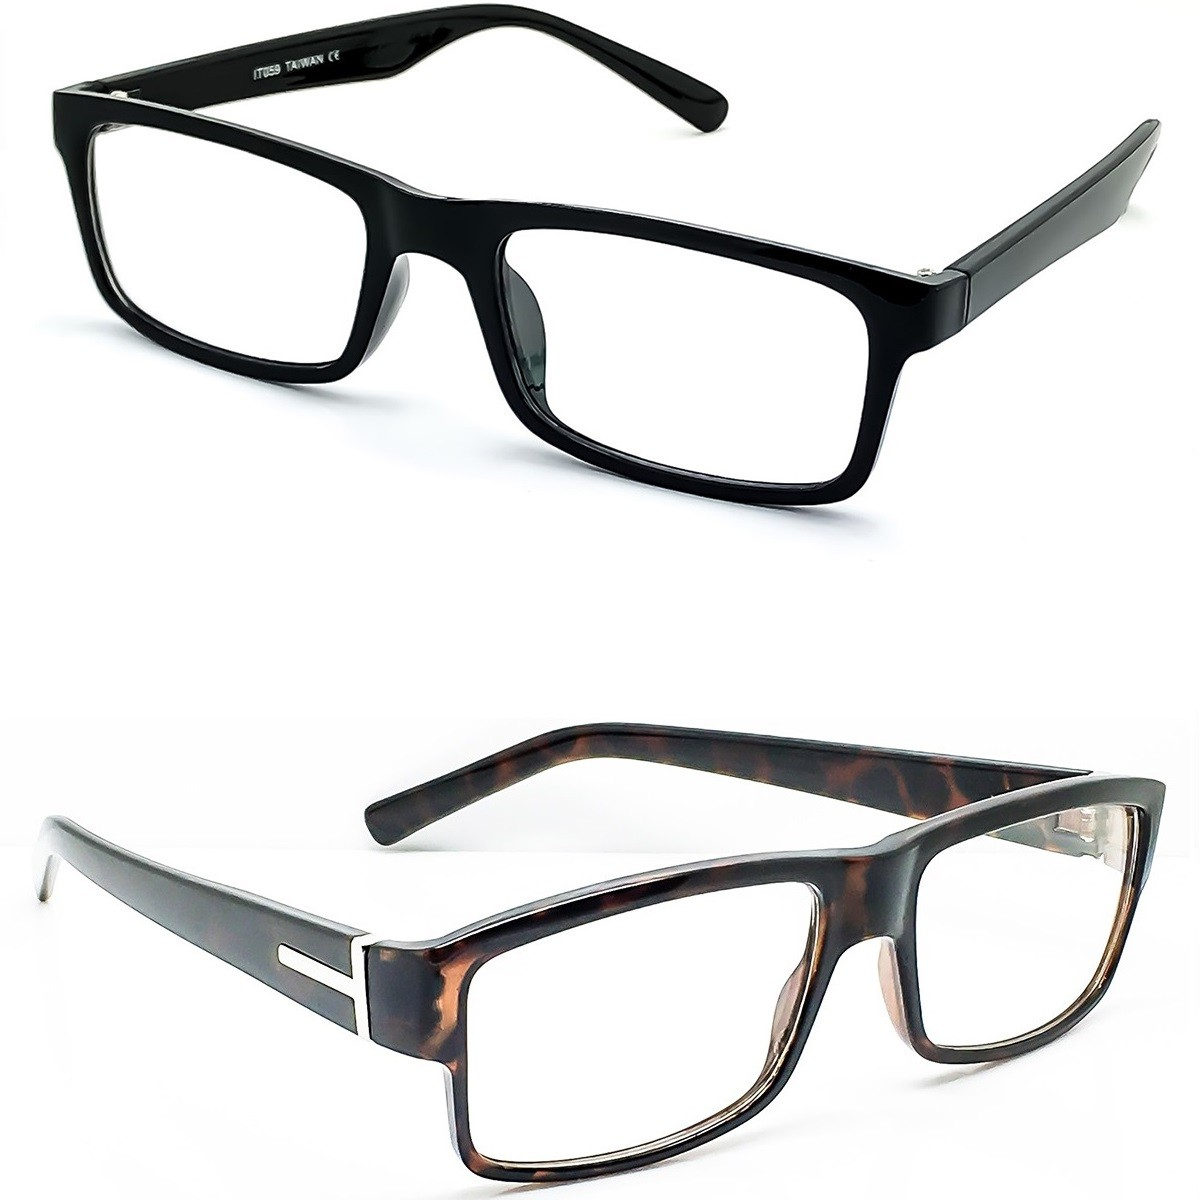 Glasses neutral KISS® - Square mod. TIGHT - optical frame VINTAGE man woman FLAT TOP